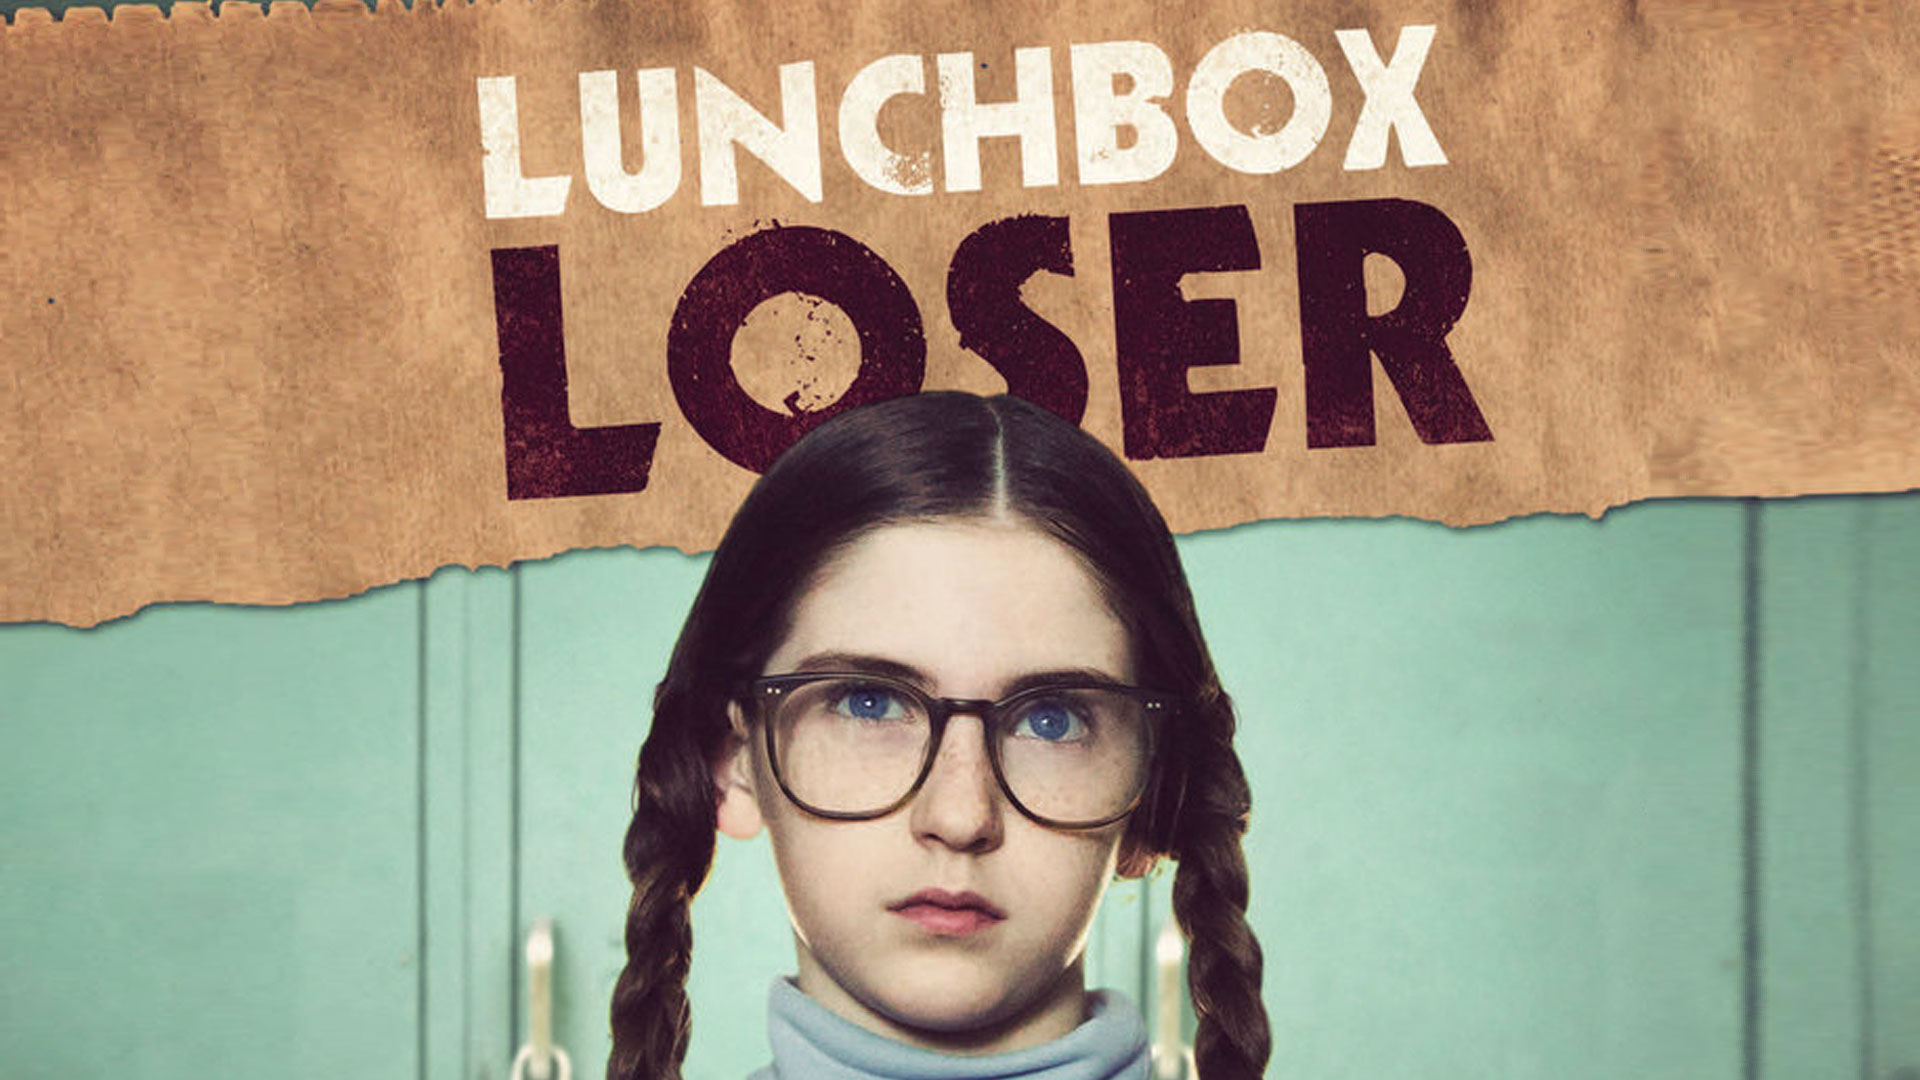 Lunchbox Loser